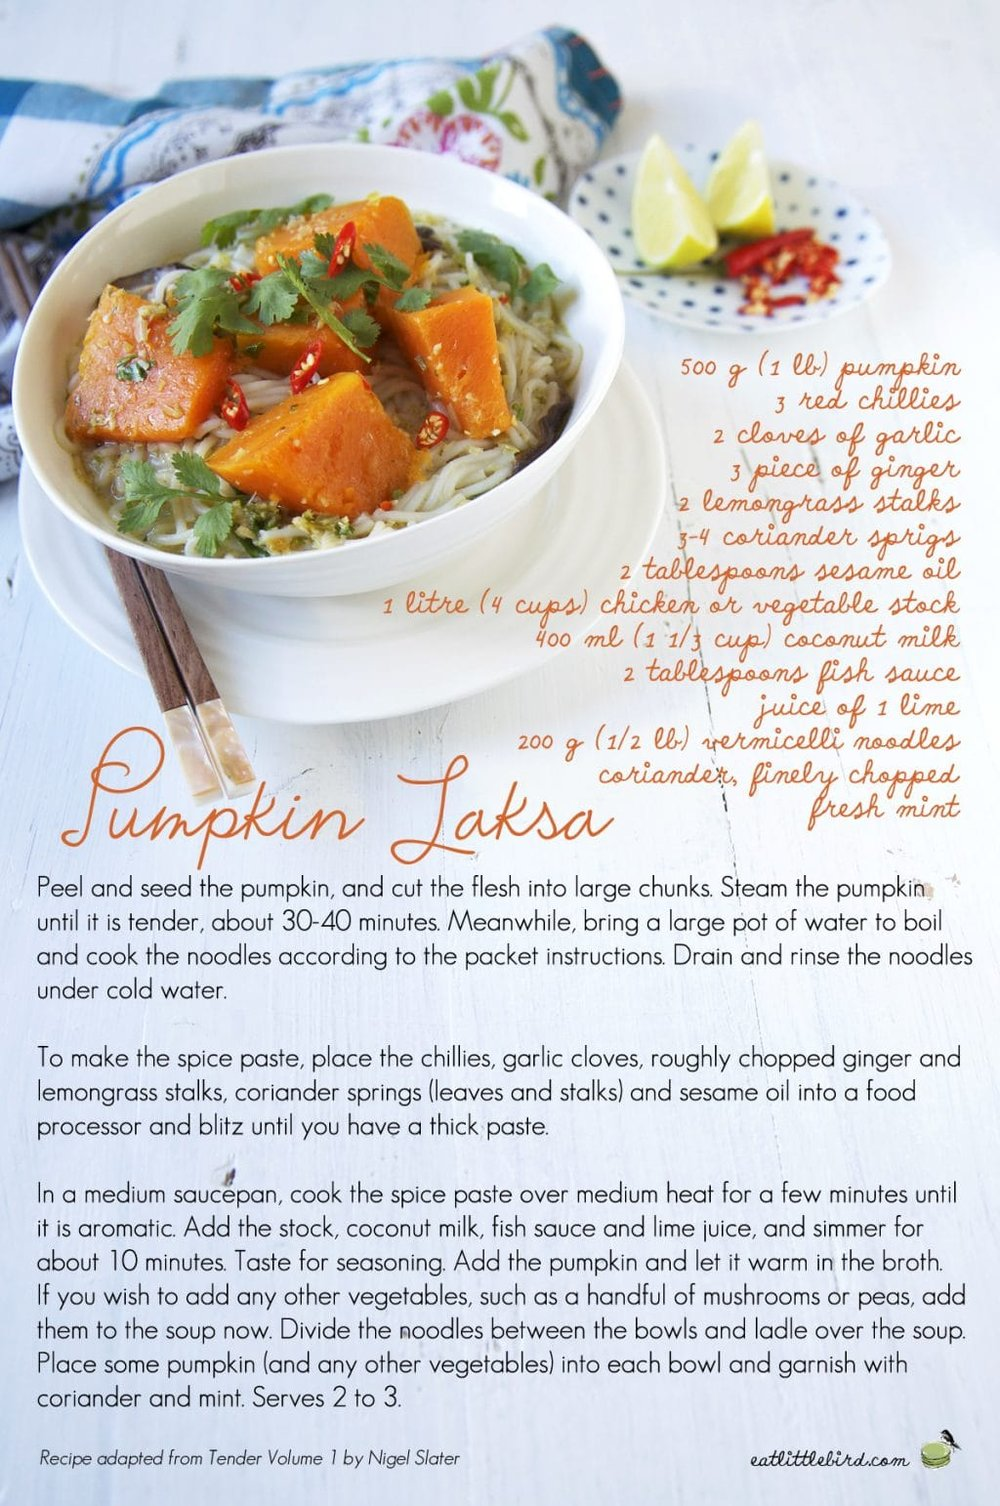 Pumpkin-Laksa-recipe-2.jpg